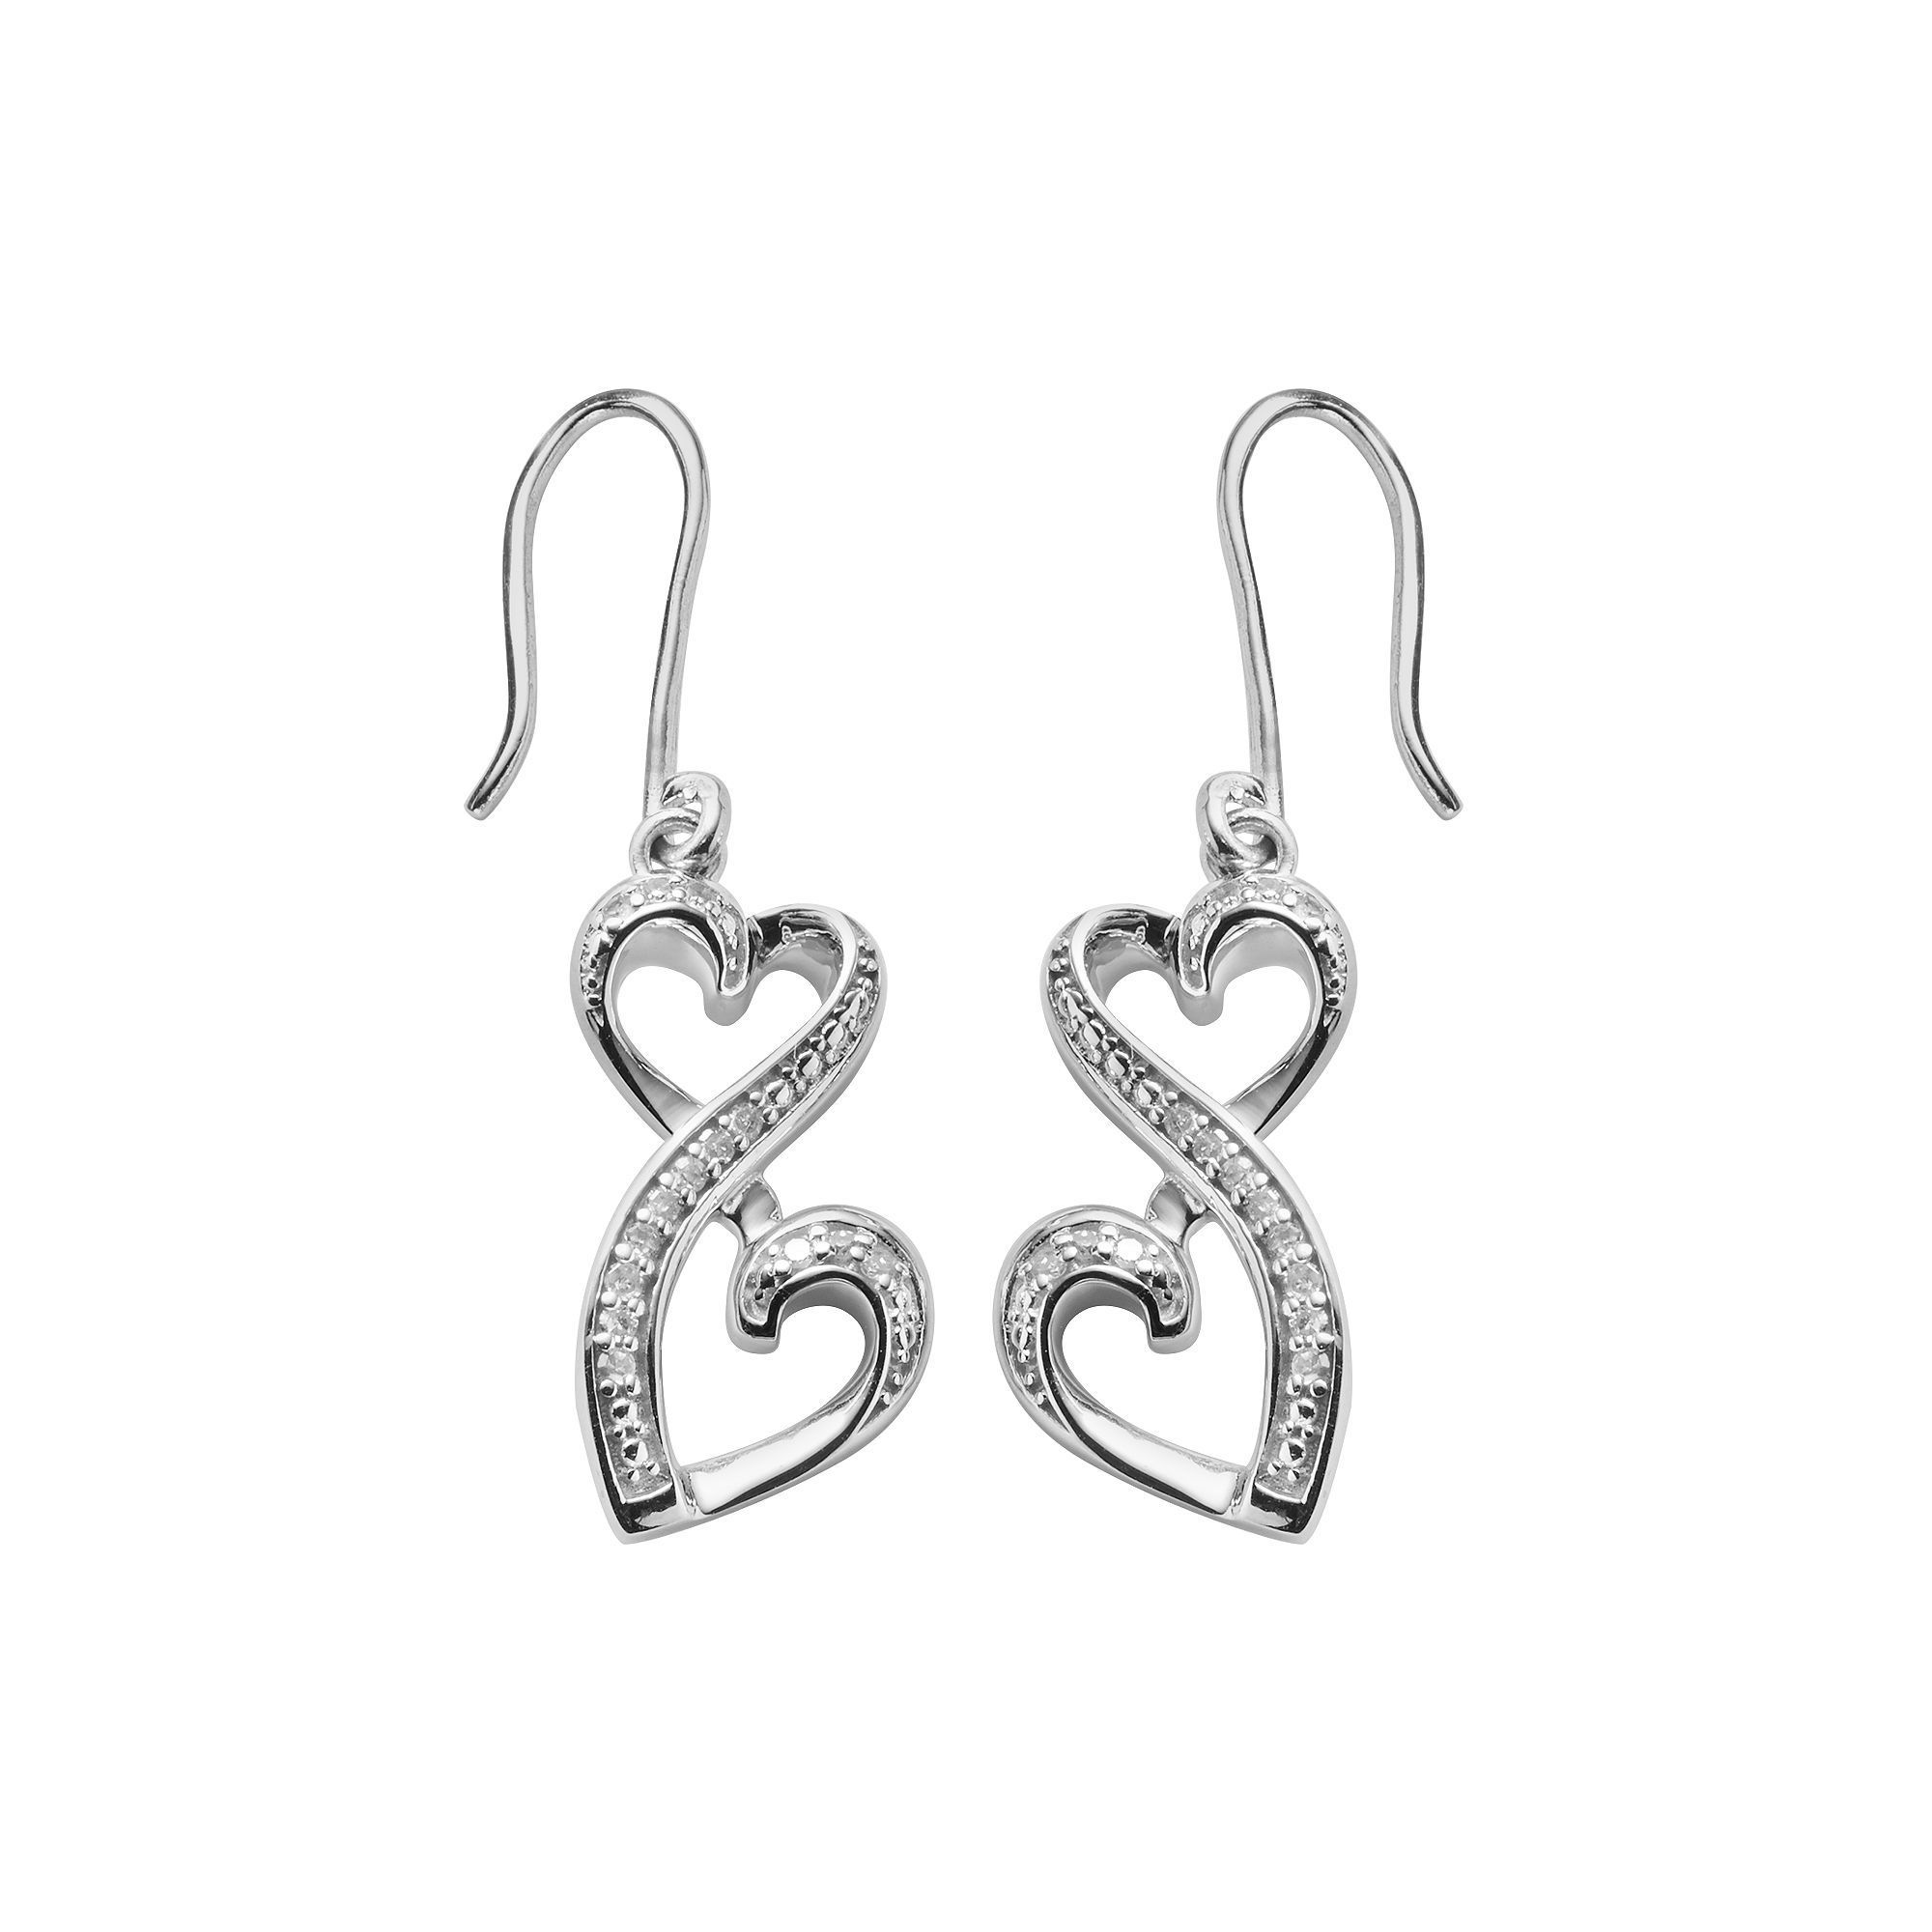 10 ct. T.W. Diamond Heart Drop Earrings